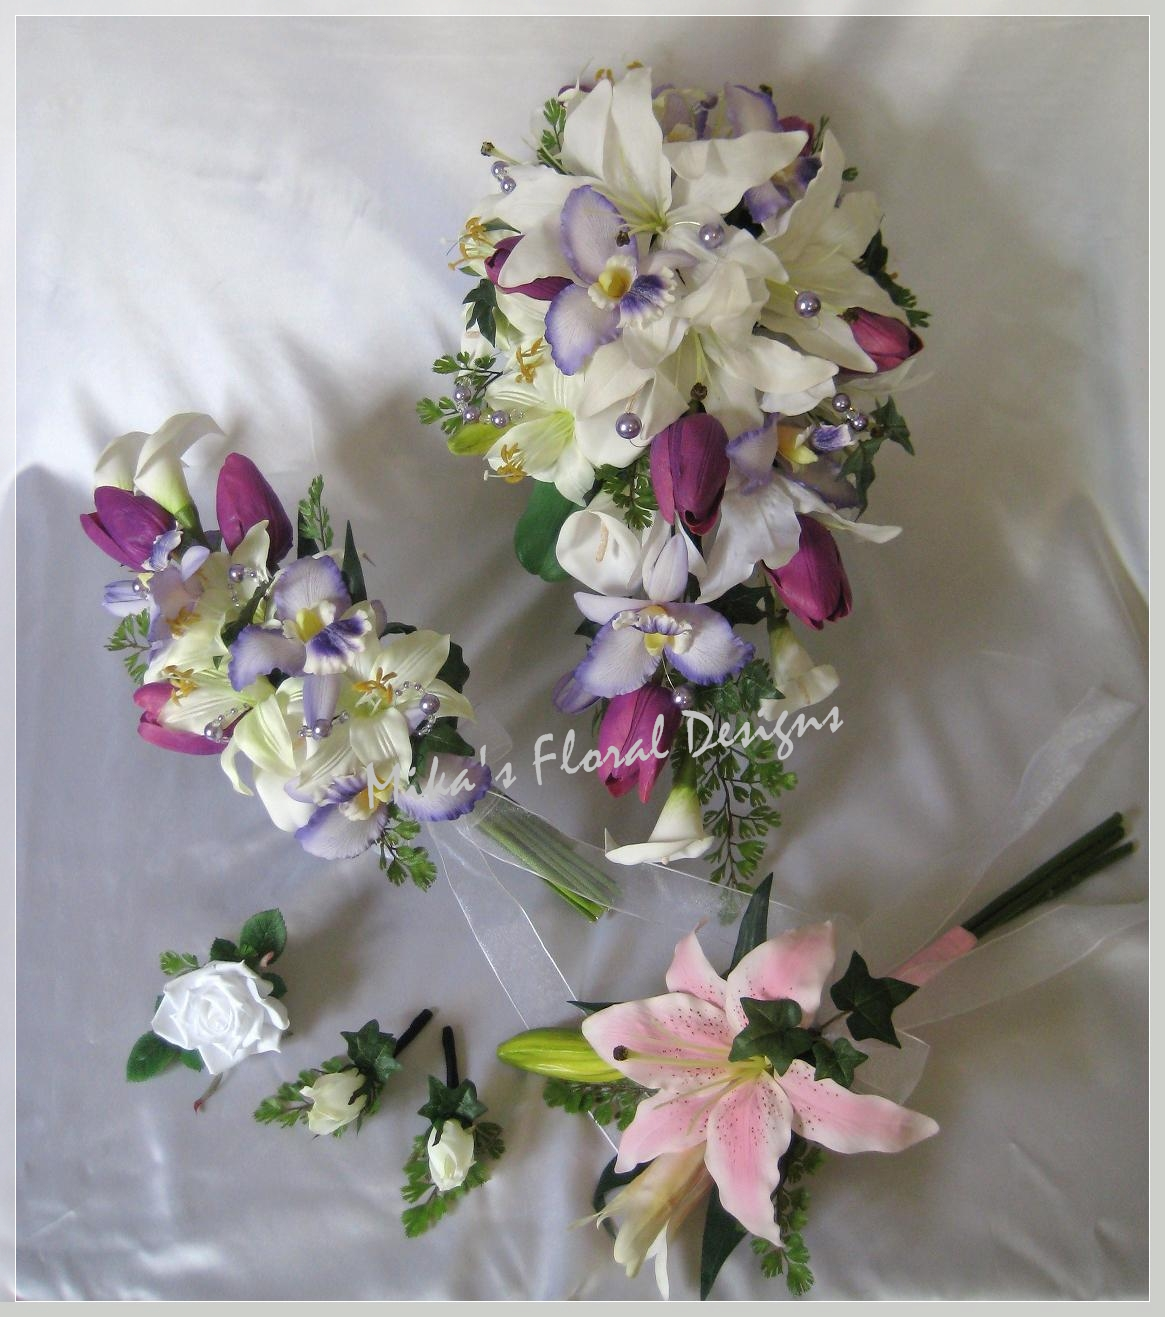 calla lily flower arrangements for weddings Photo